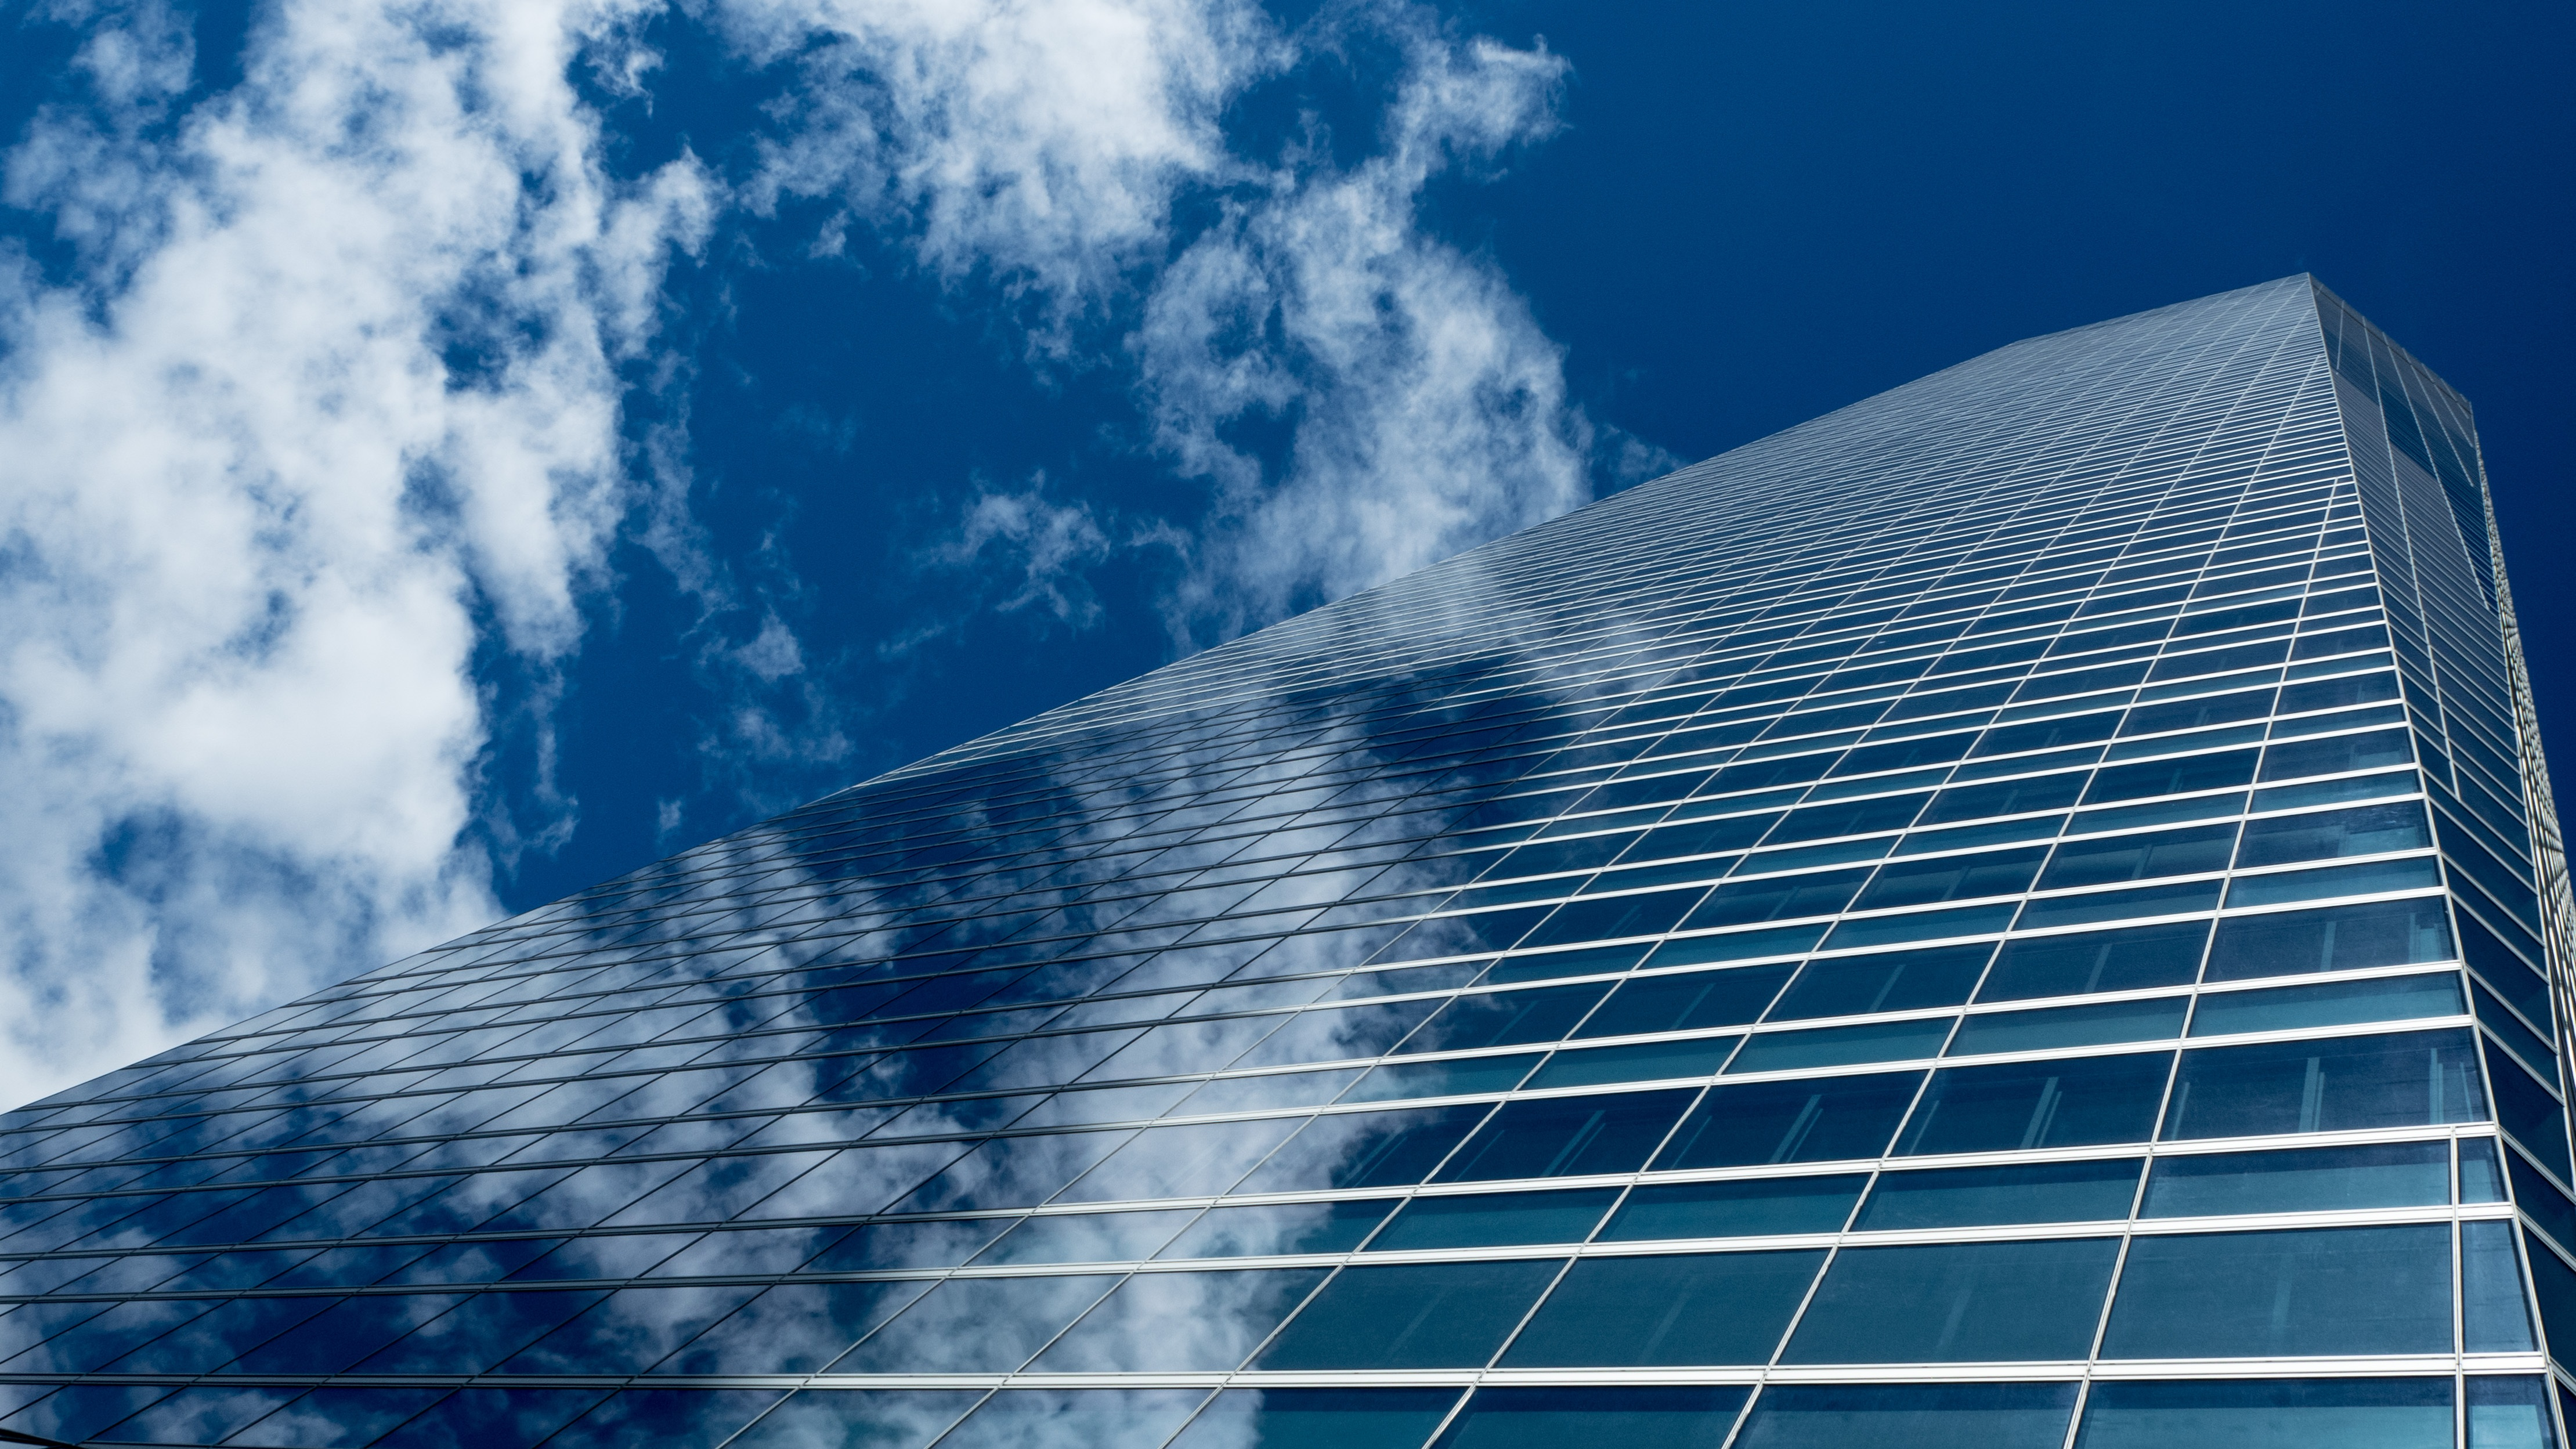 Cool Black Wallpaper White And Blue Building During Daytime 183 Free Stock Photo